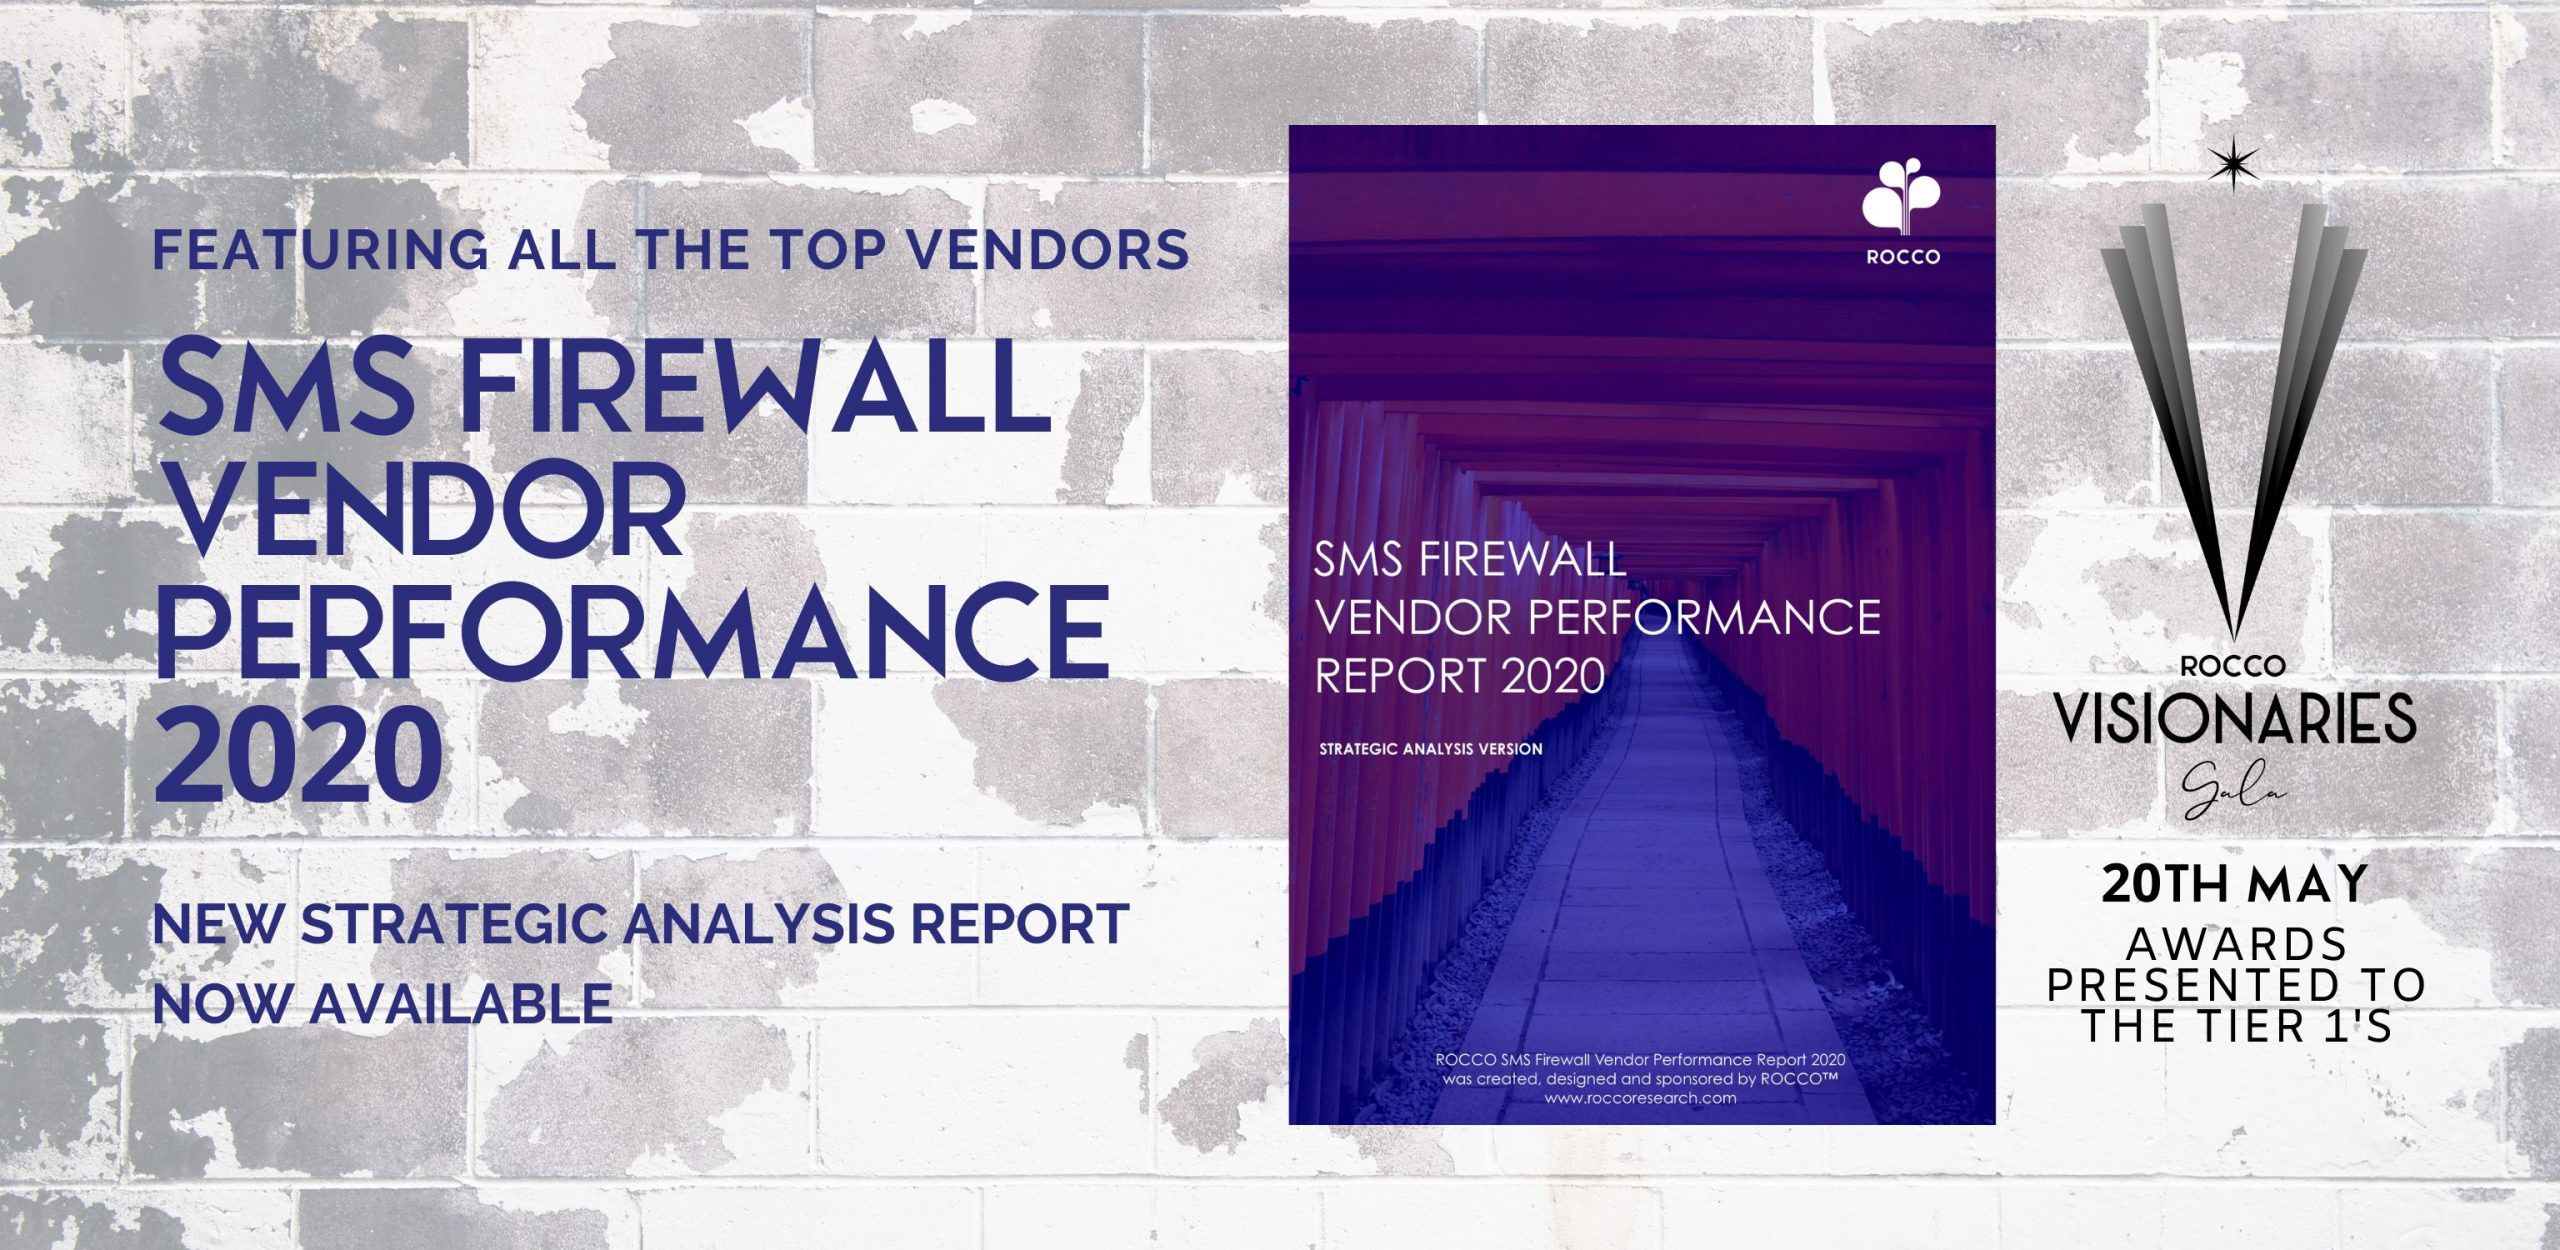 SMS FIREWALL VENDOR PERFORMANCE 2020